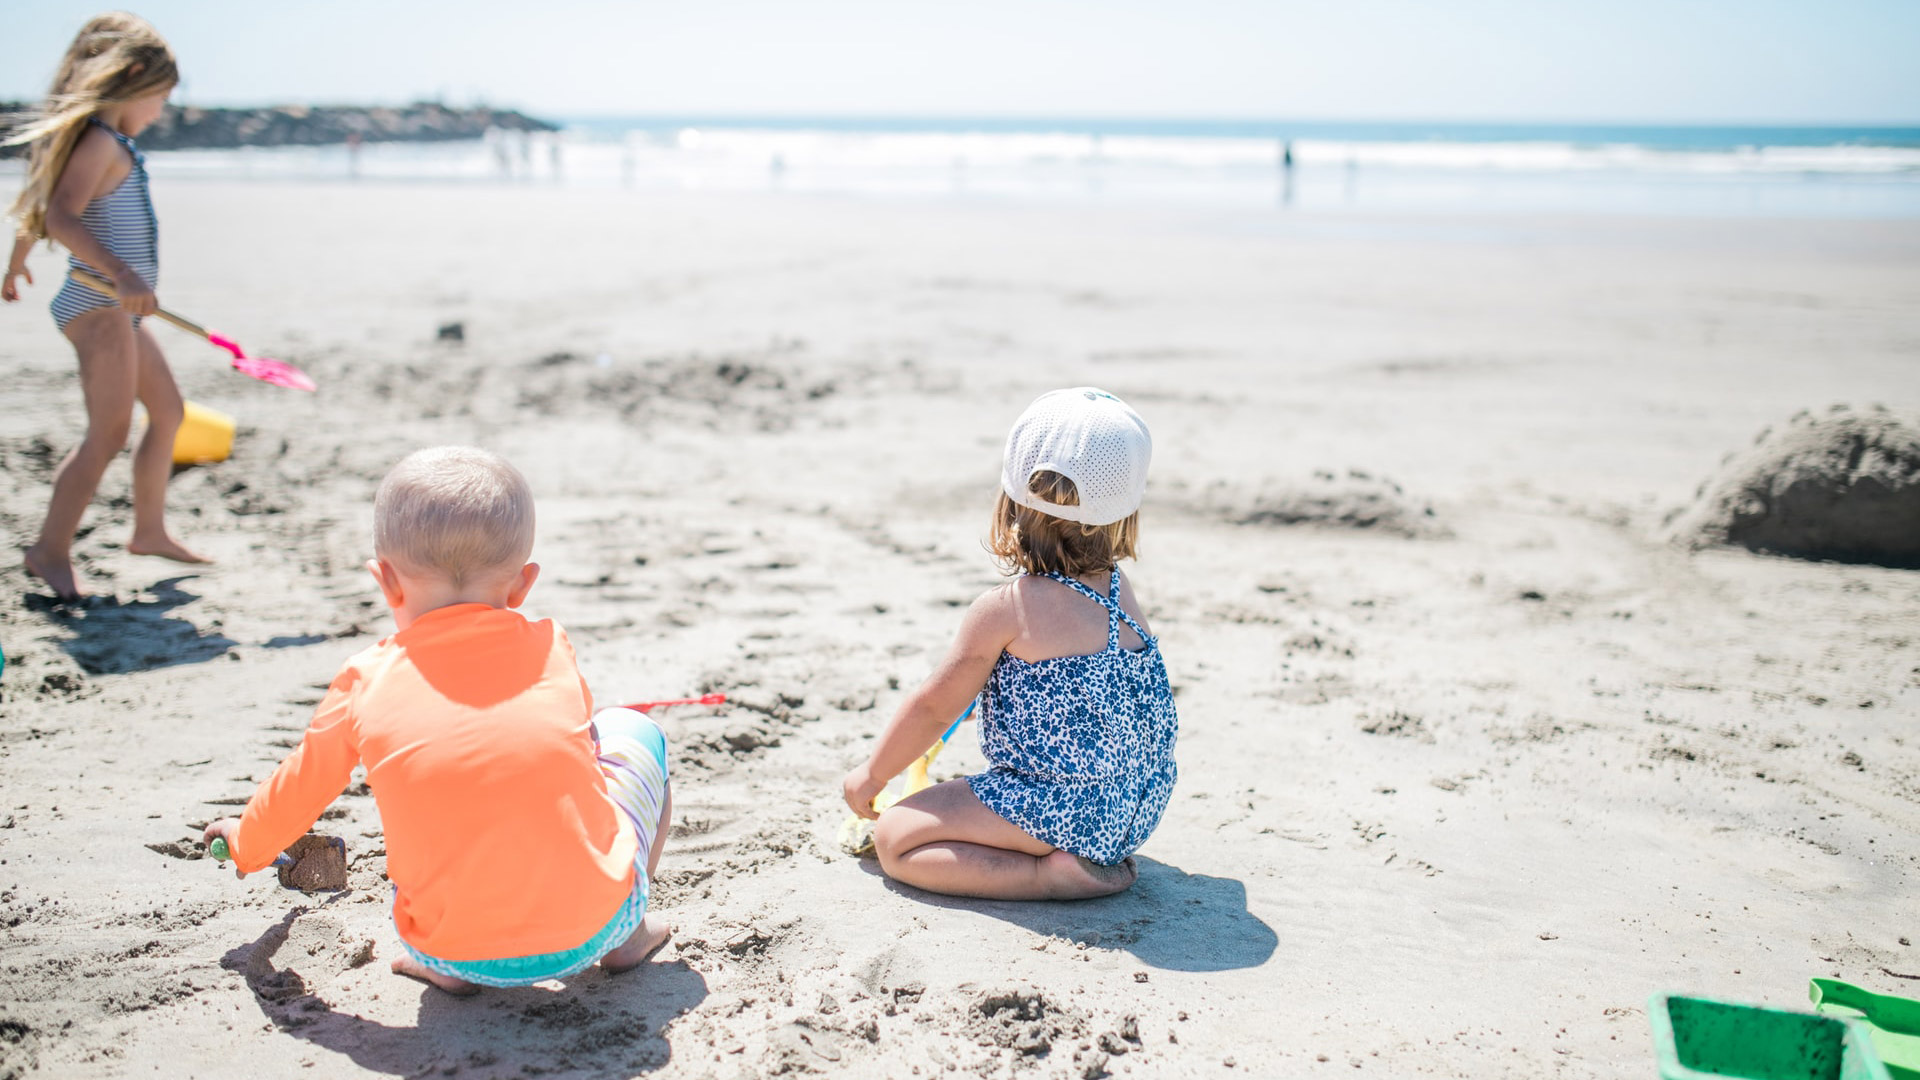 9 must-have packing essentials for a family fun day out at the beach